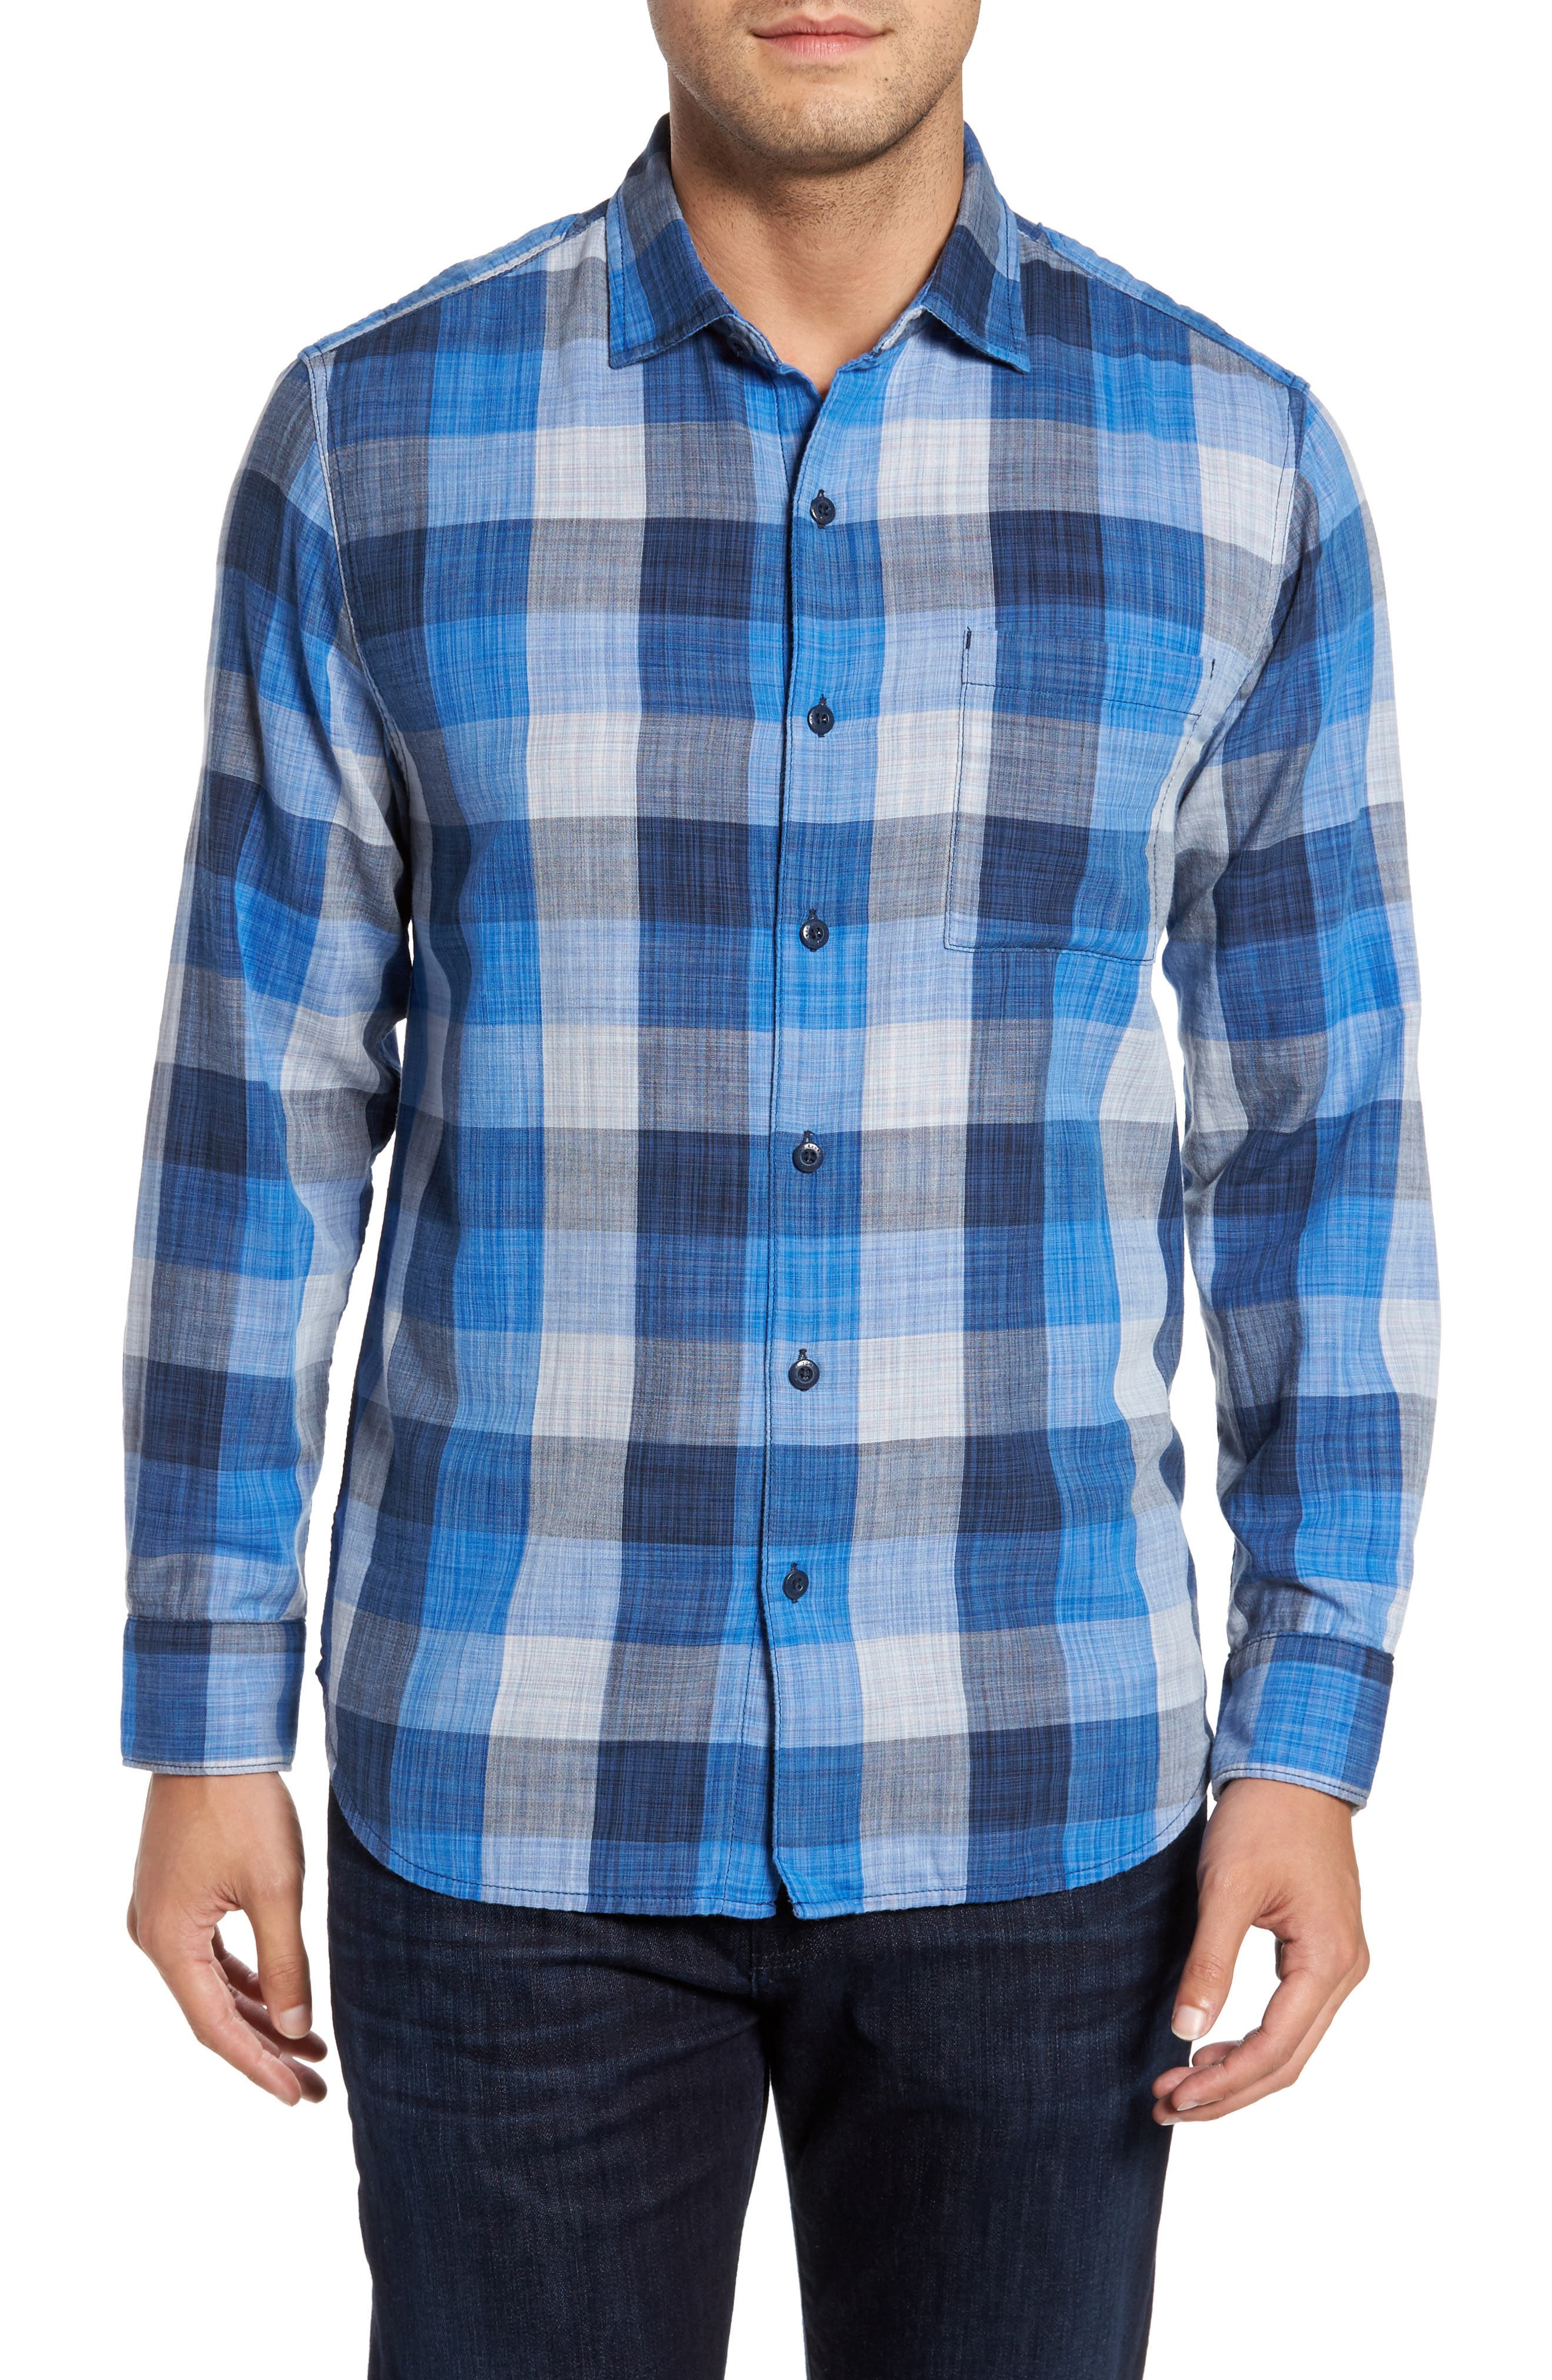 Alternate Image 1 Selected - Tommy Bahama Dual Lux Check Sport Shirt